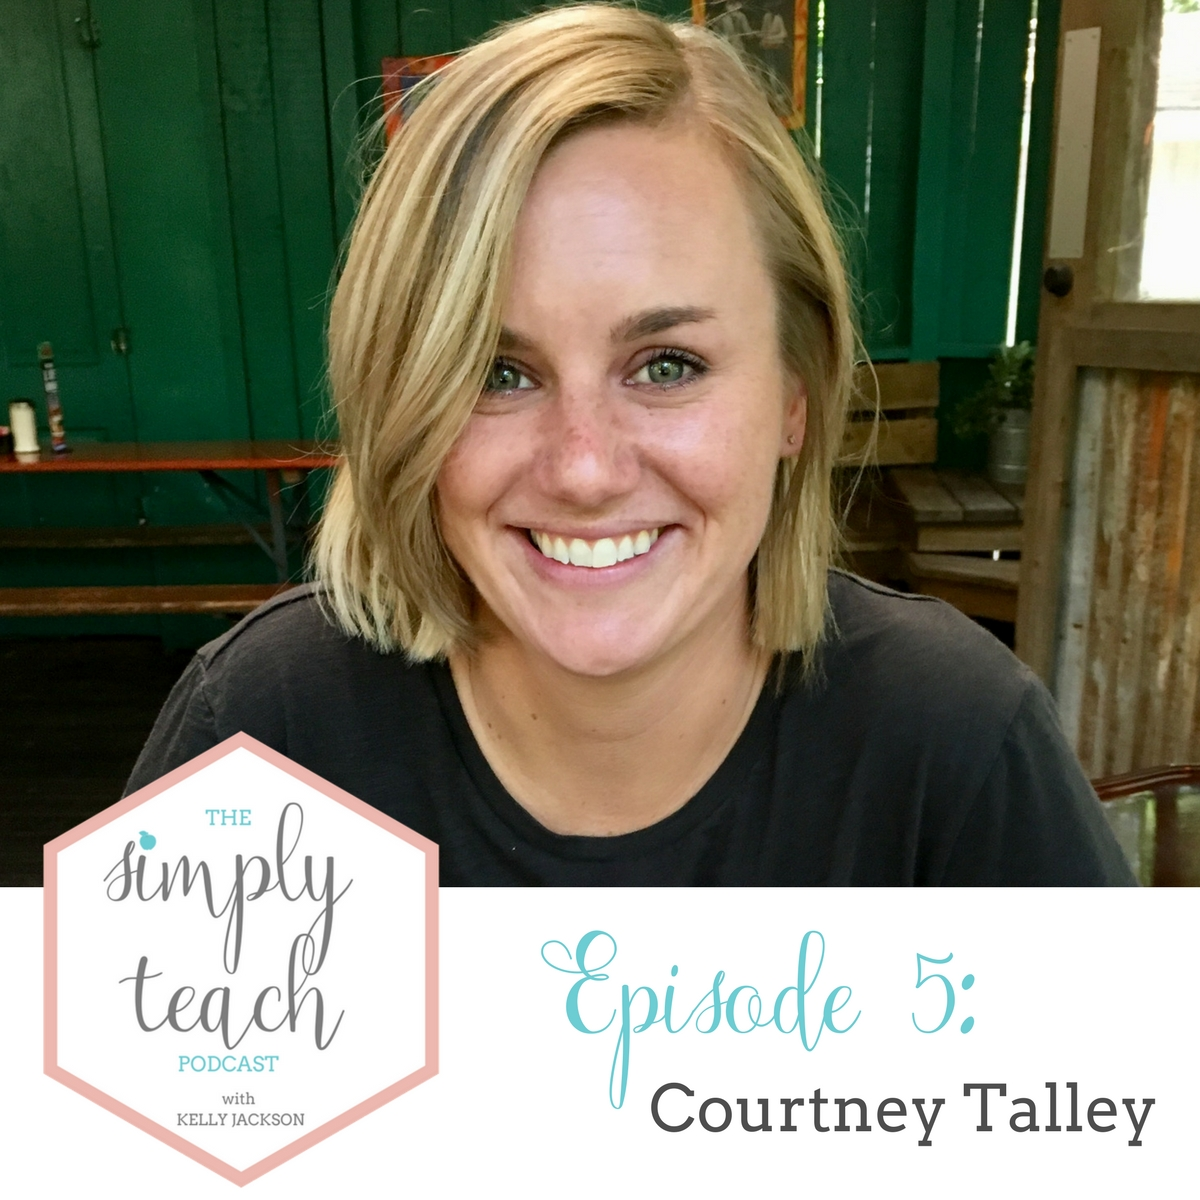 """A woman smiling for the camera. Text overlay: """"Simply Teach Podcast Episode 5 Courtney Talley"""""""